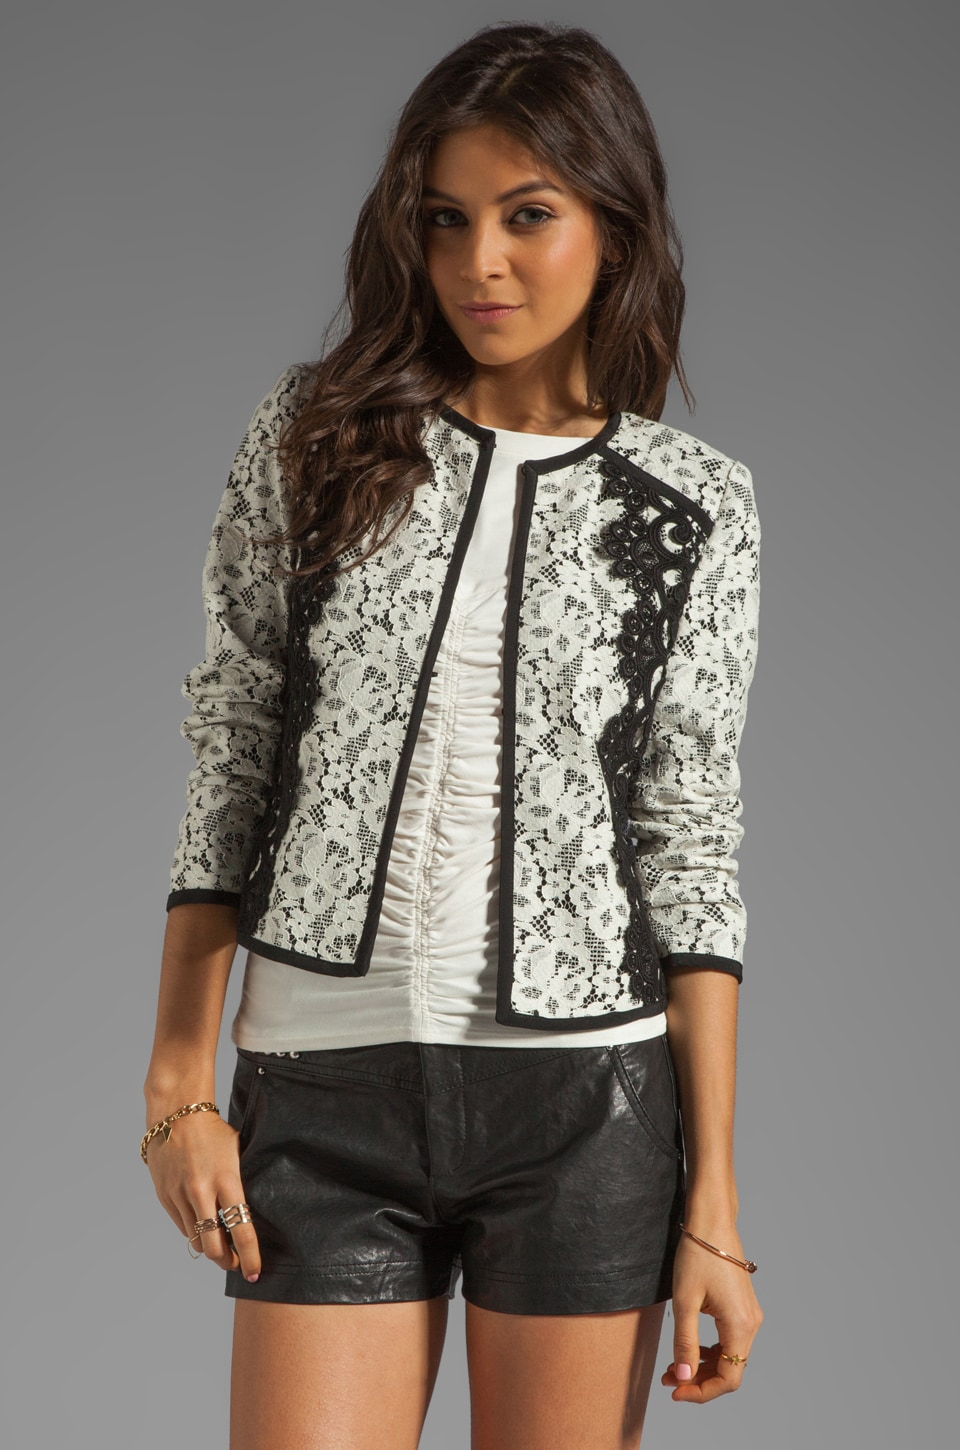 Nanette Lepore Spectacle Lace Jacket in Ivory and Black